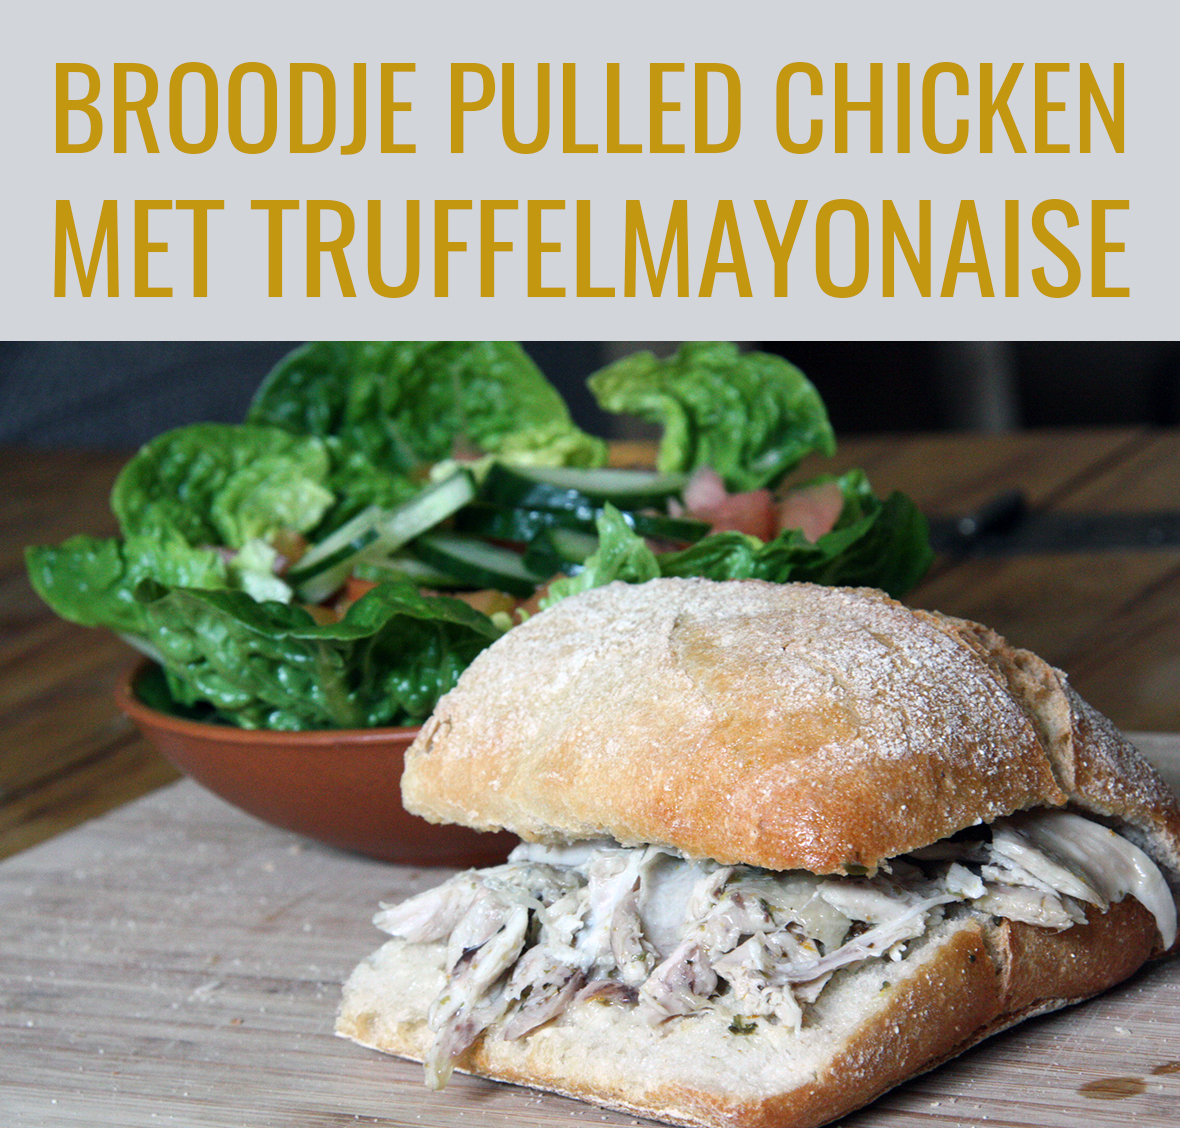 Broodje pulled chicken met truffelmayo